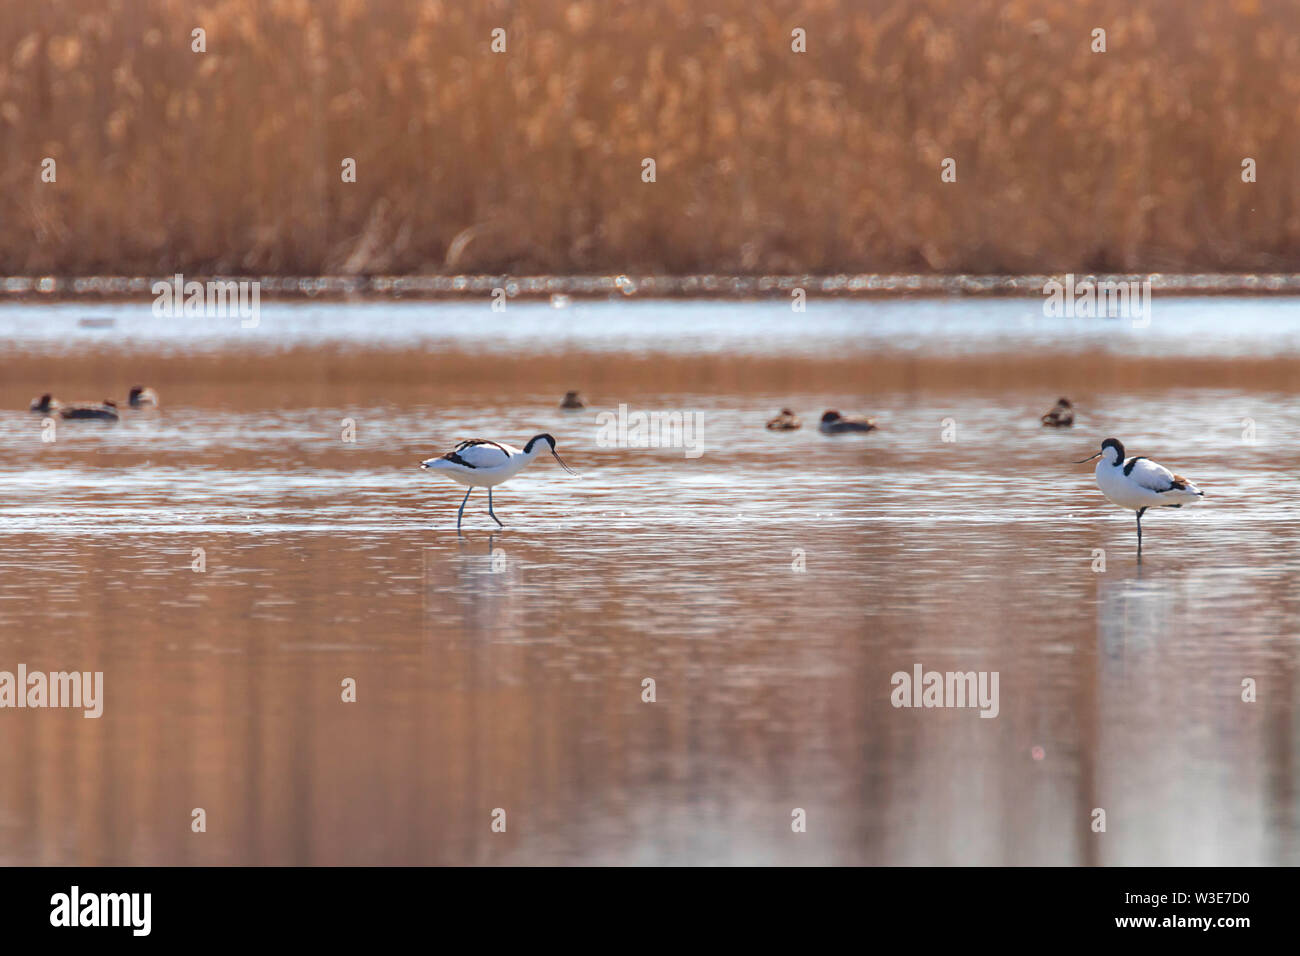 Pied Avocet in water looking for food (Recurvirostra avosetta) Black and white wader bird - Stock Image